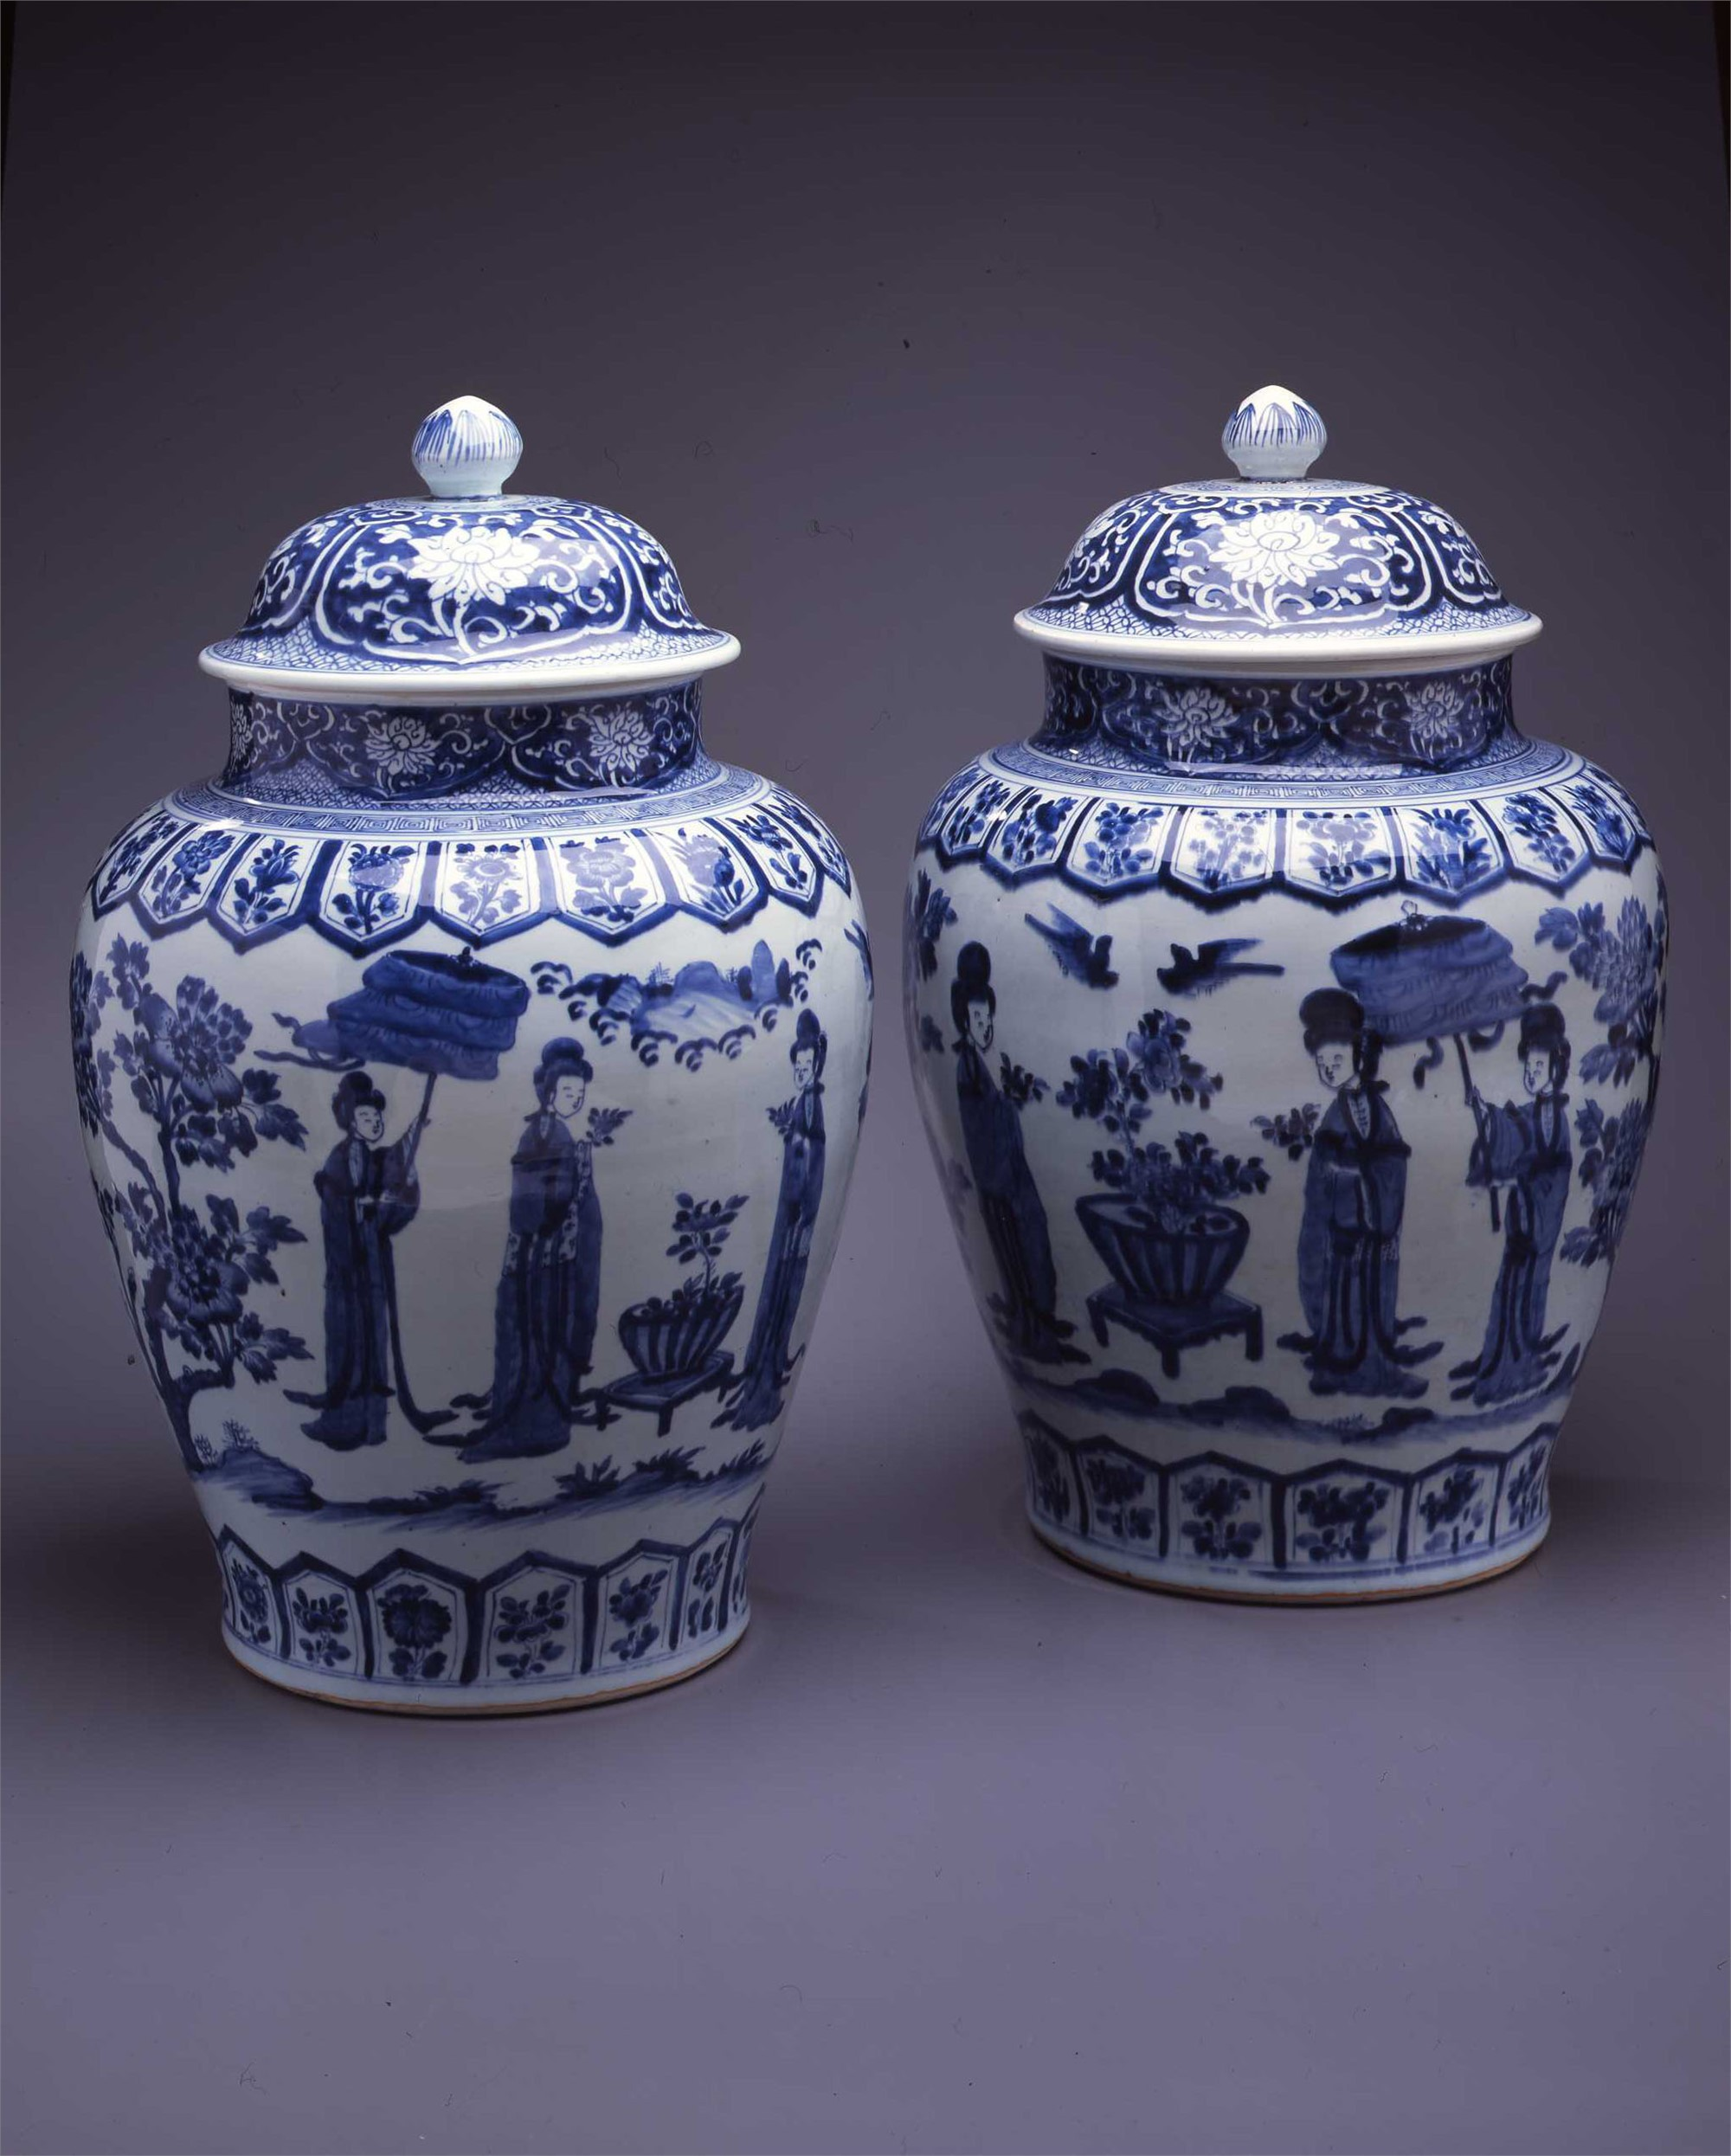 PAIR OF LARGE BLUE & WHITE JARS WITH COVERS